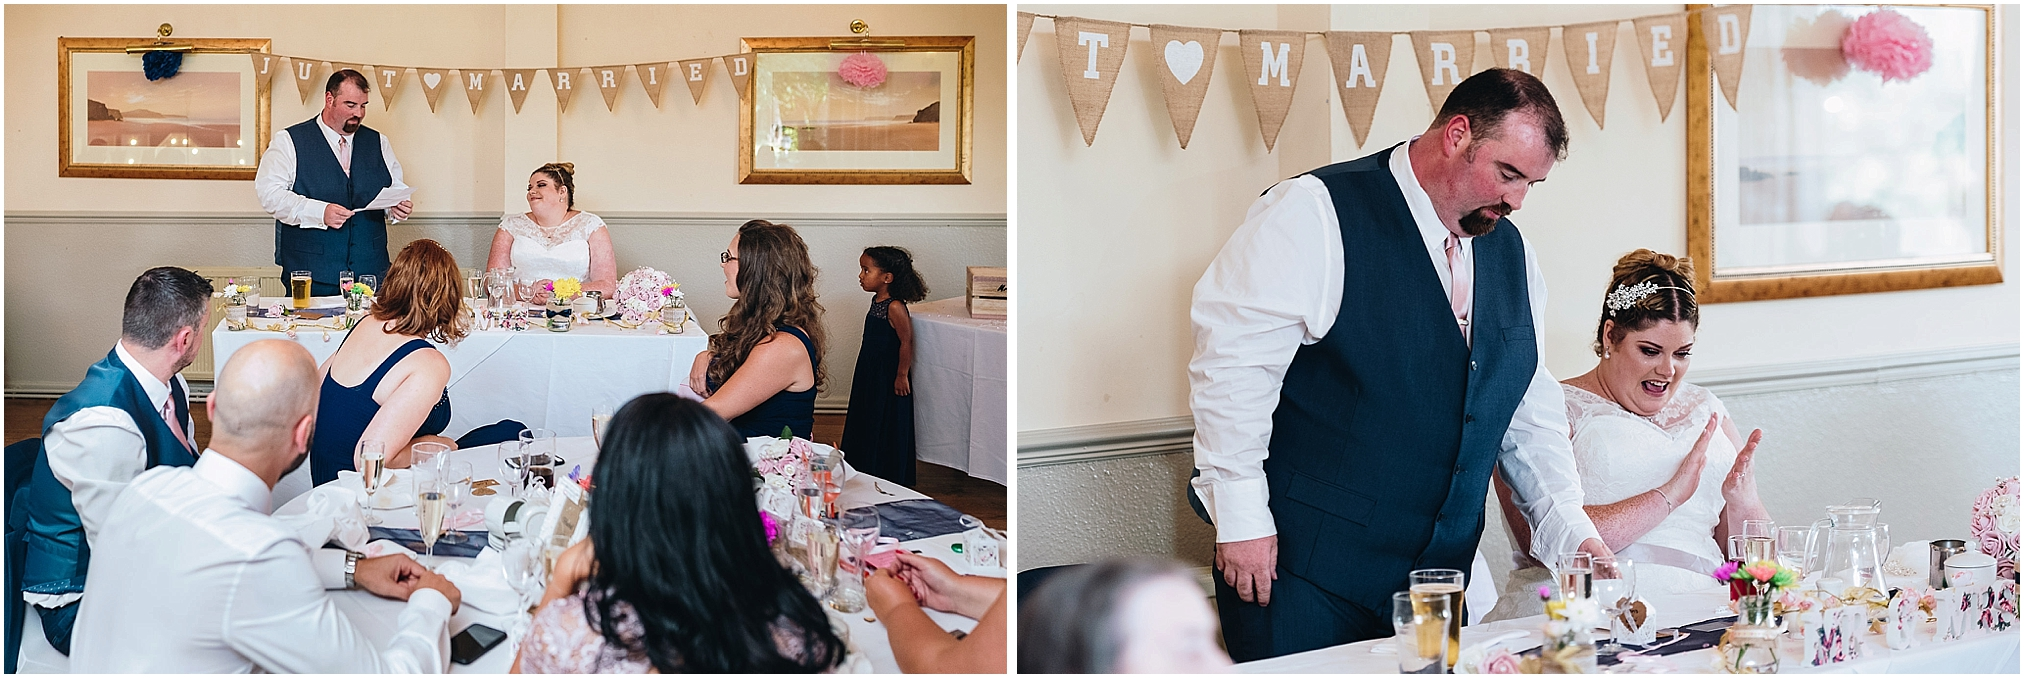 Staffordshire_wedding_photographer-101.jpg